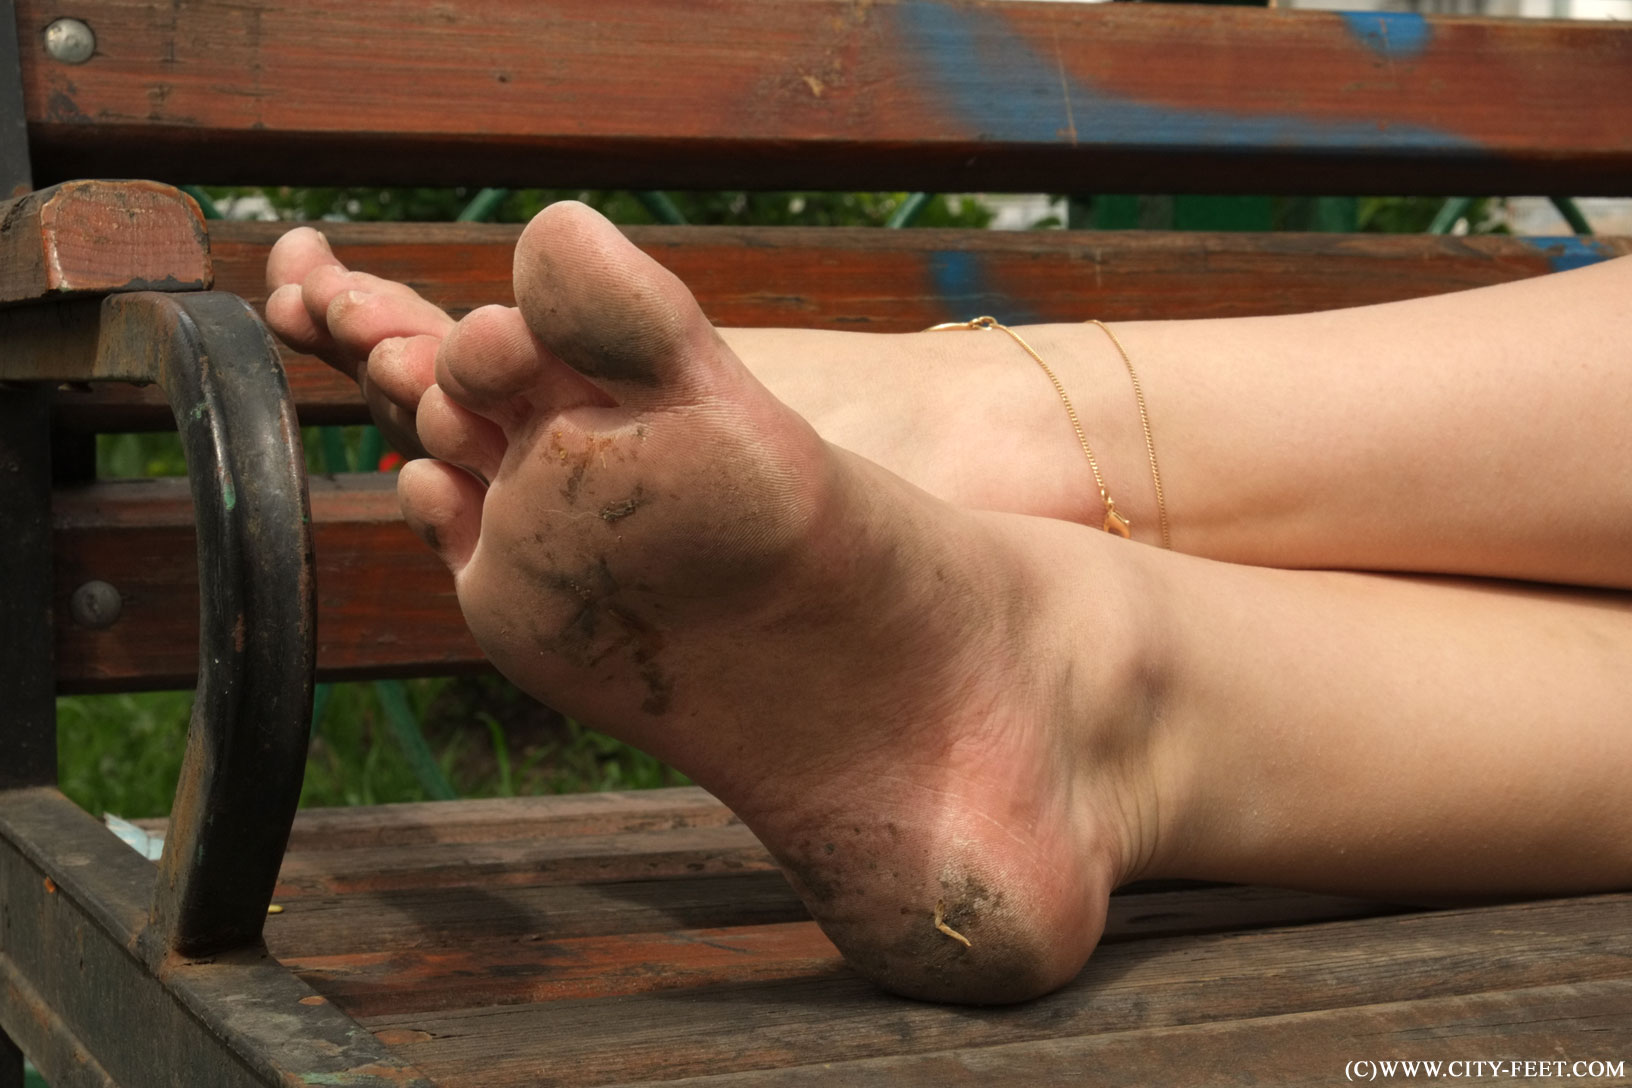 Foot fetish free sample video consider